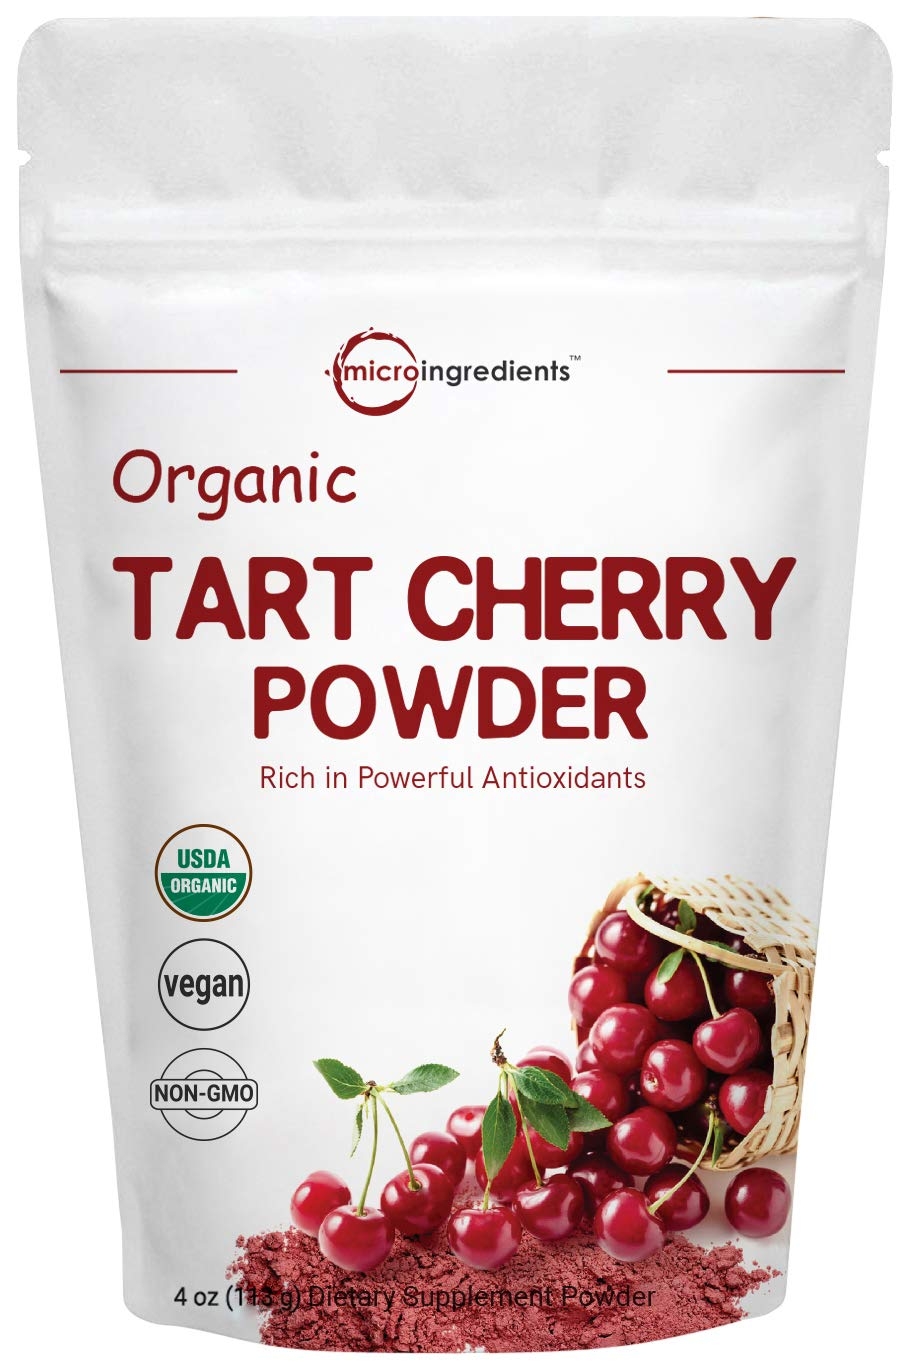 Sustainably US Grown, Organic Tart Cherry Powder, 4 Ounce, Pure Tart Cherry Supplement, Rich in Antioxidant and Flavonoids, Enhance Joint Health, Sleep Cycles and Immune System, Vegan Friendly